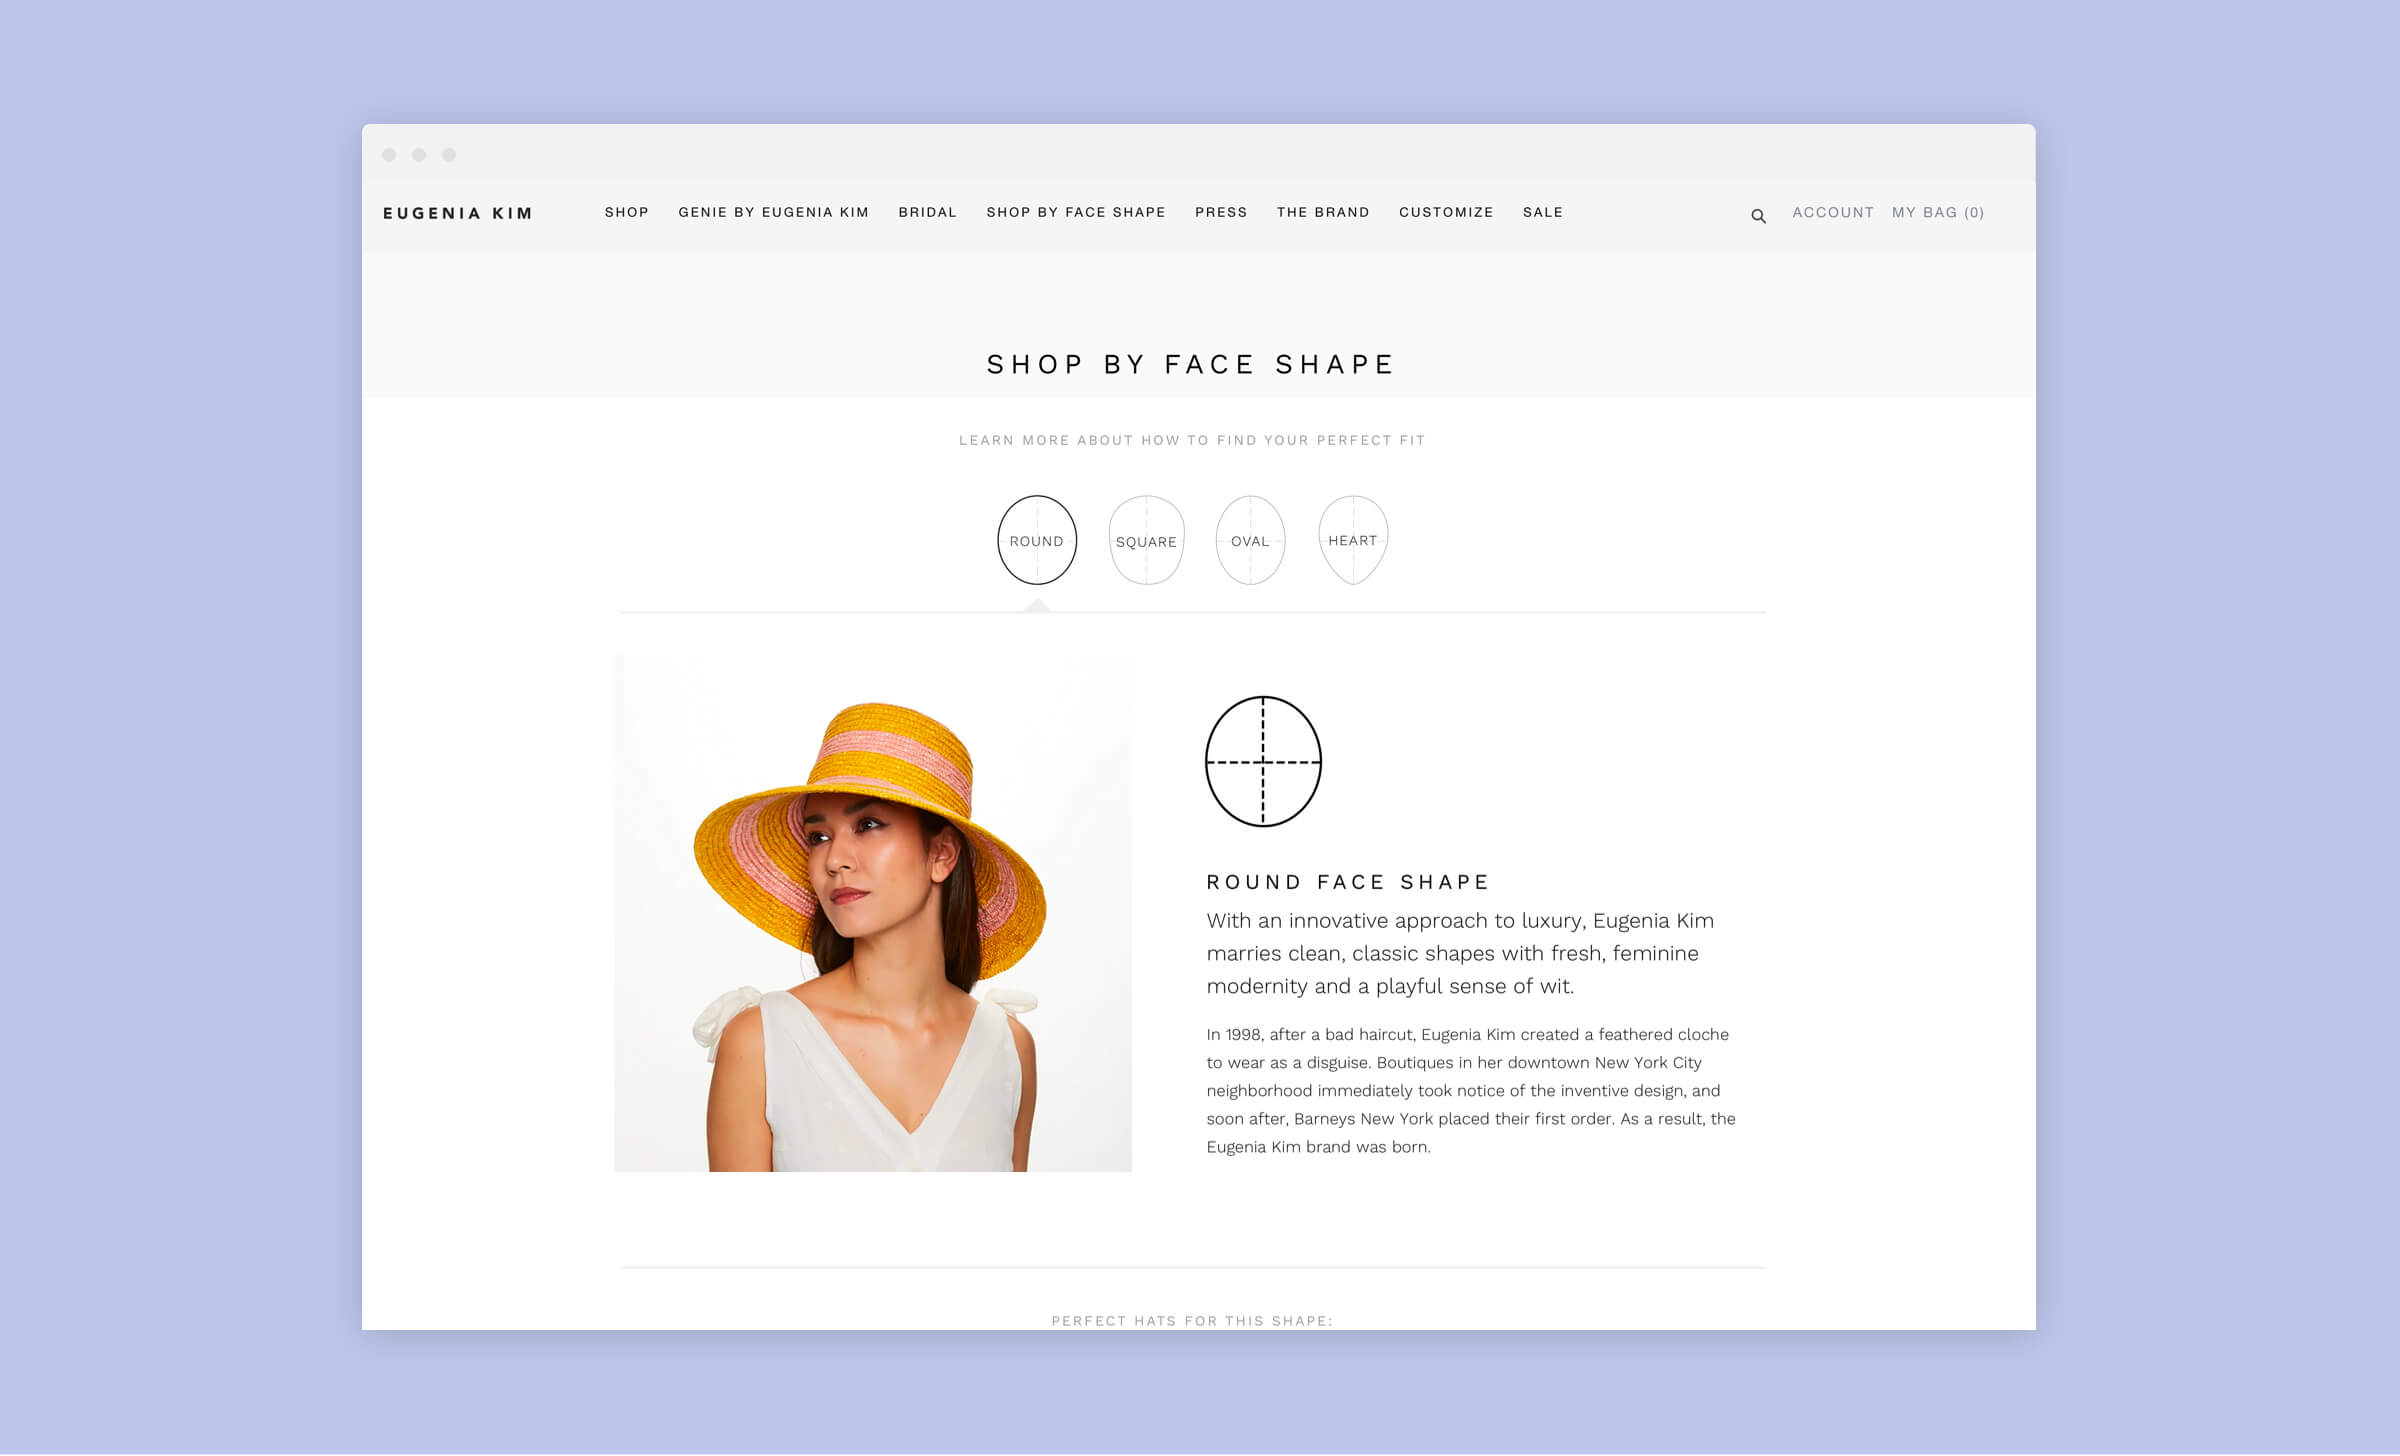 eugenia kim shop by face shape page